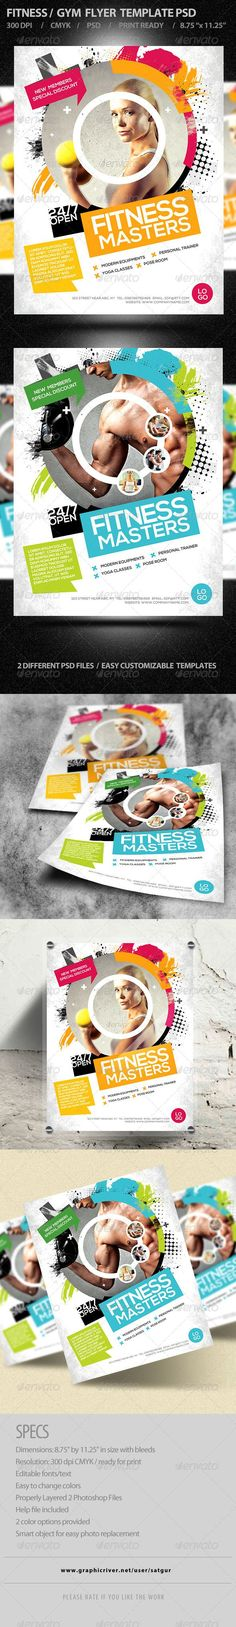 Fitness Flyer / Gym Flyer - Corporate Flyers